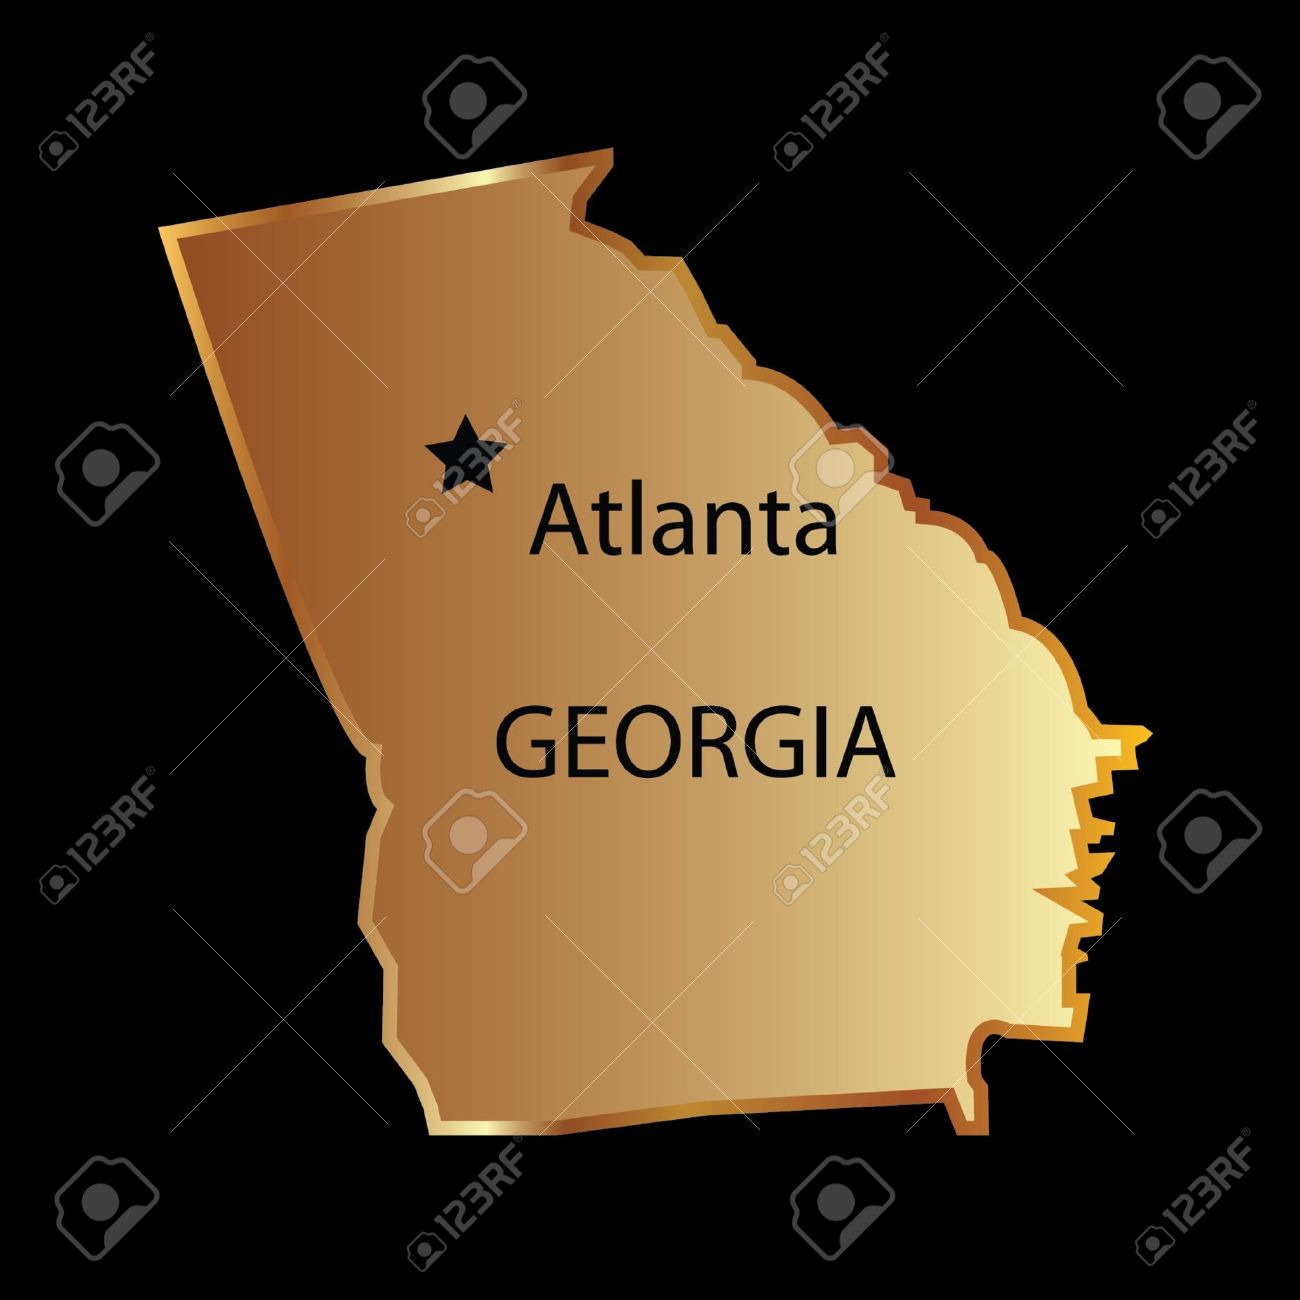 Map Of Georgia With Capital.Gold Georgia State Map With Capital Name